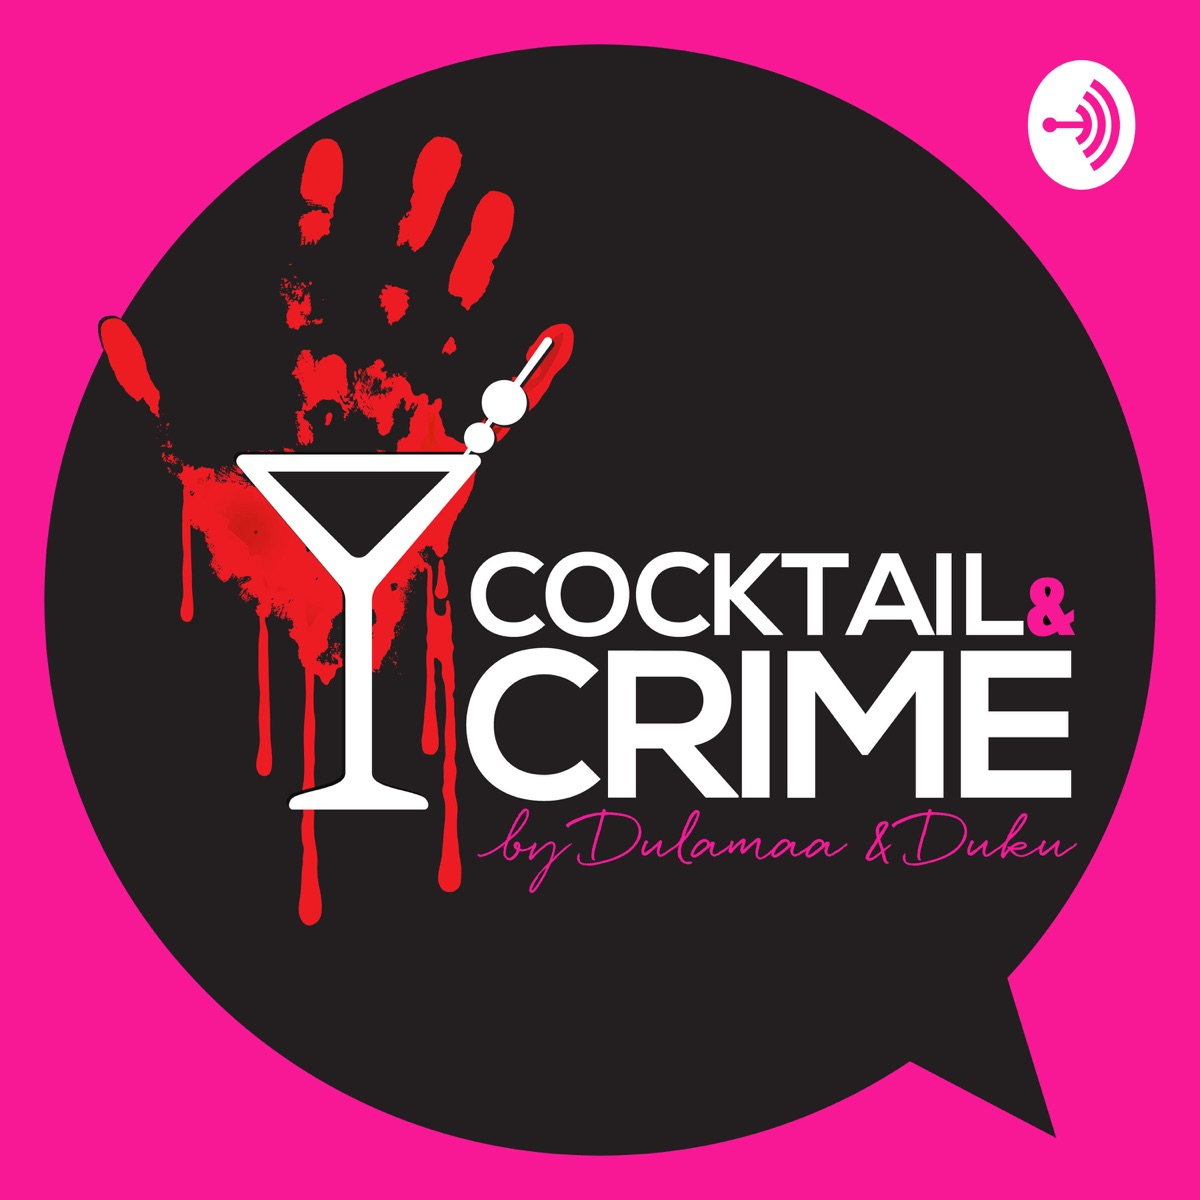 Cocktail and Crime